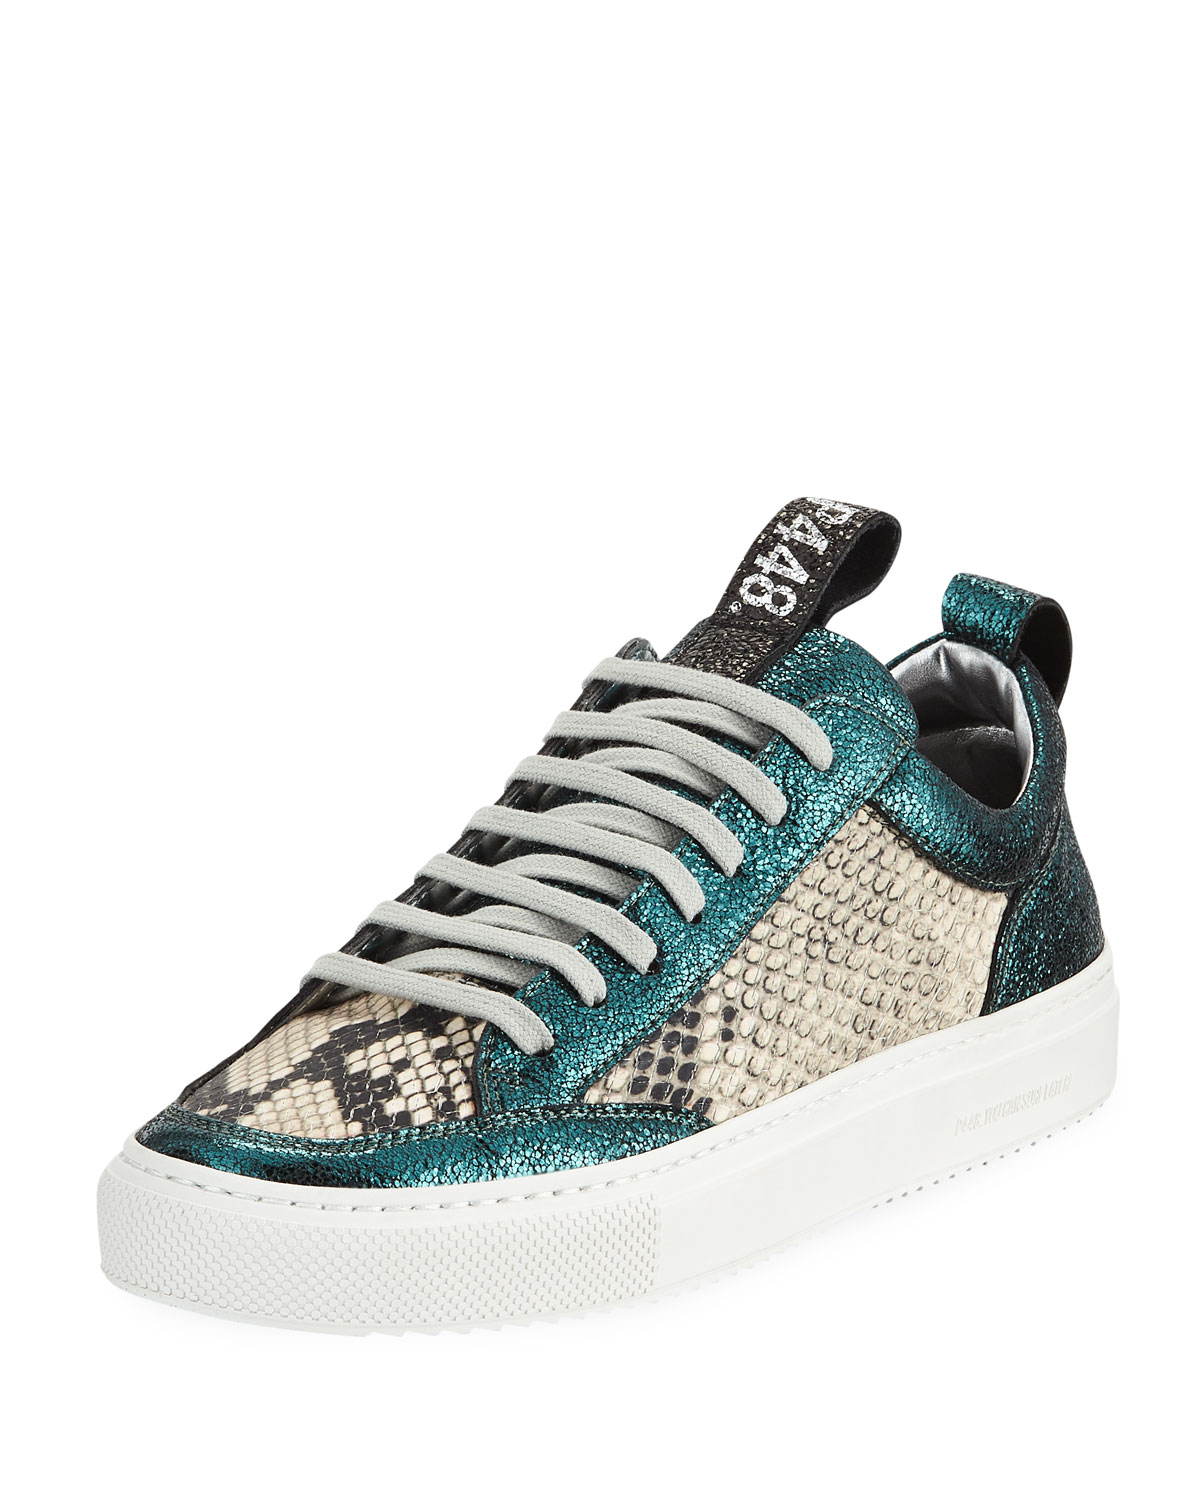 Women'S Soho Crackled & Snake-Embossed Leather Lace-Up Sneakers, White/ Blue Sparkle